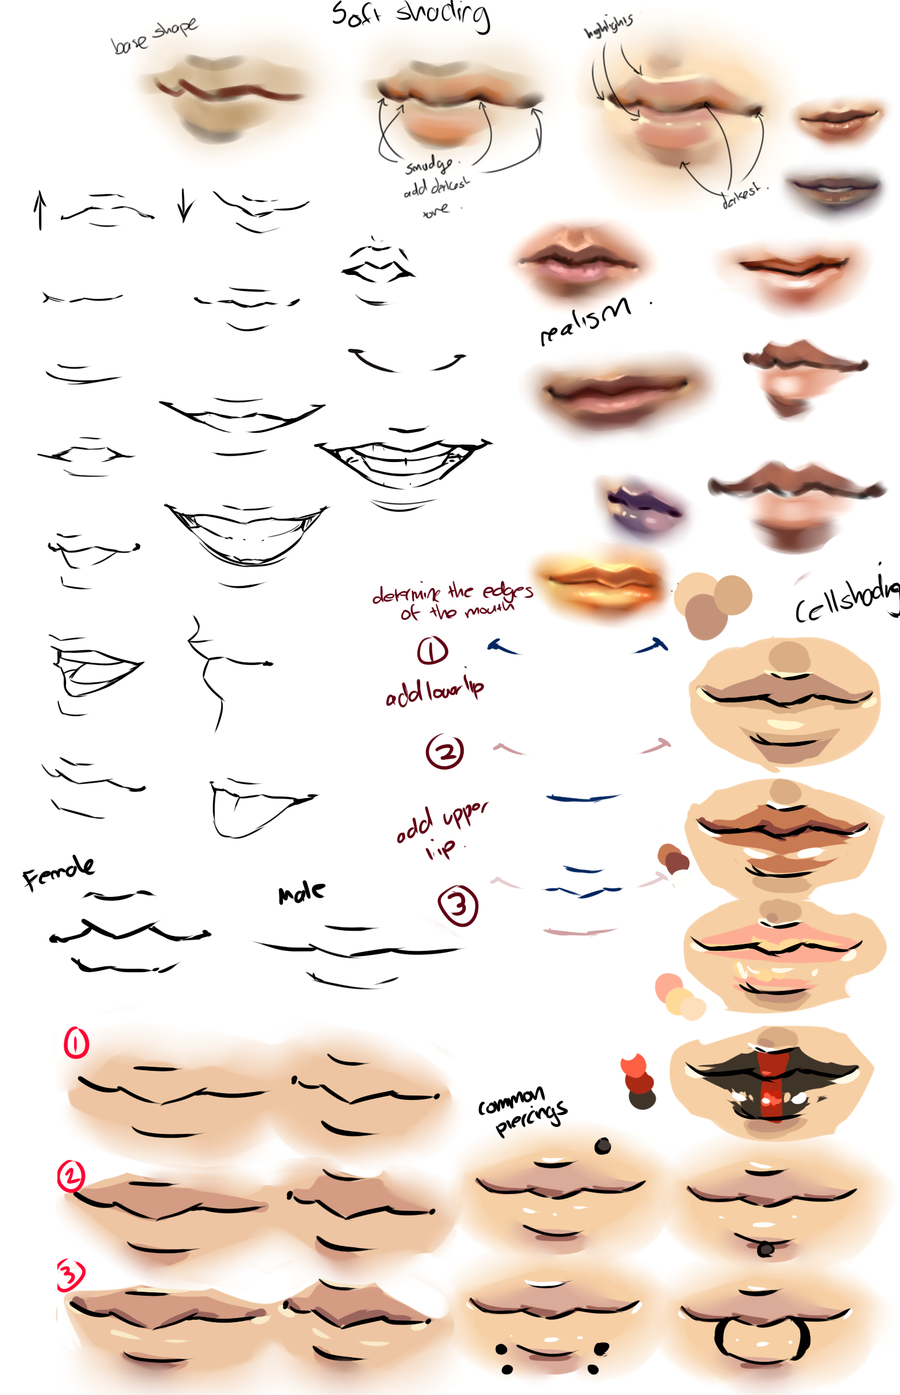 Anime And Realism Lips Tips By Moni158 On Deviantart Lips Drawing Anime Lips Drawings